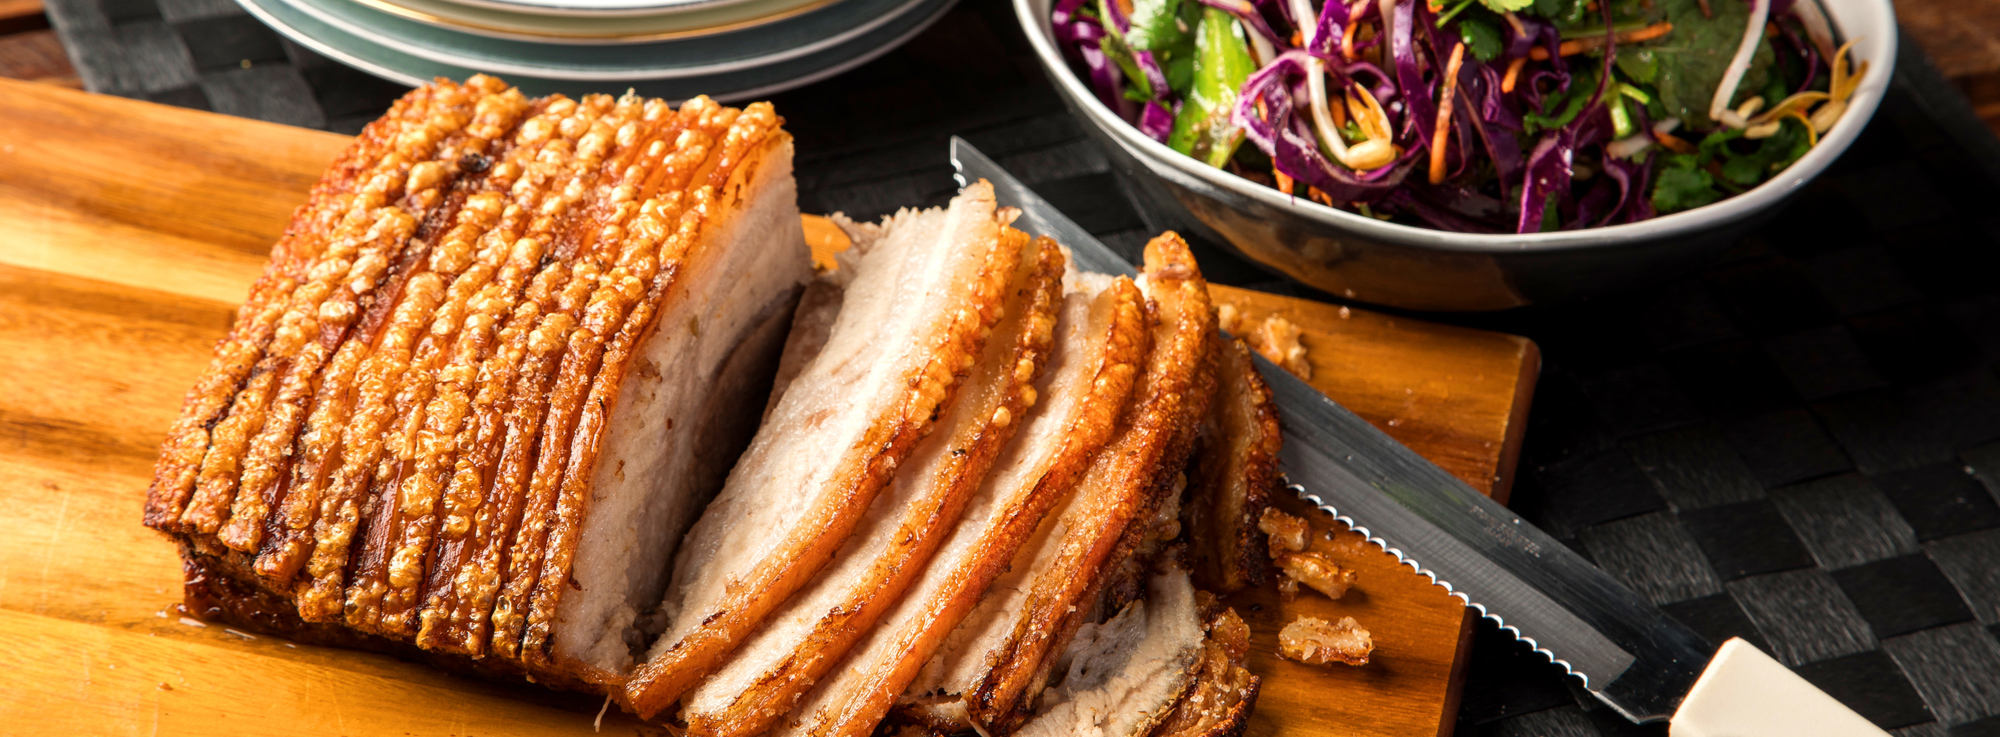 Crispy pork belly with Asian salad